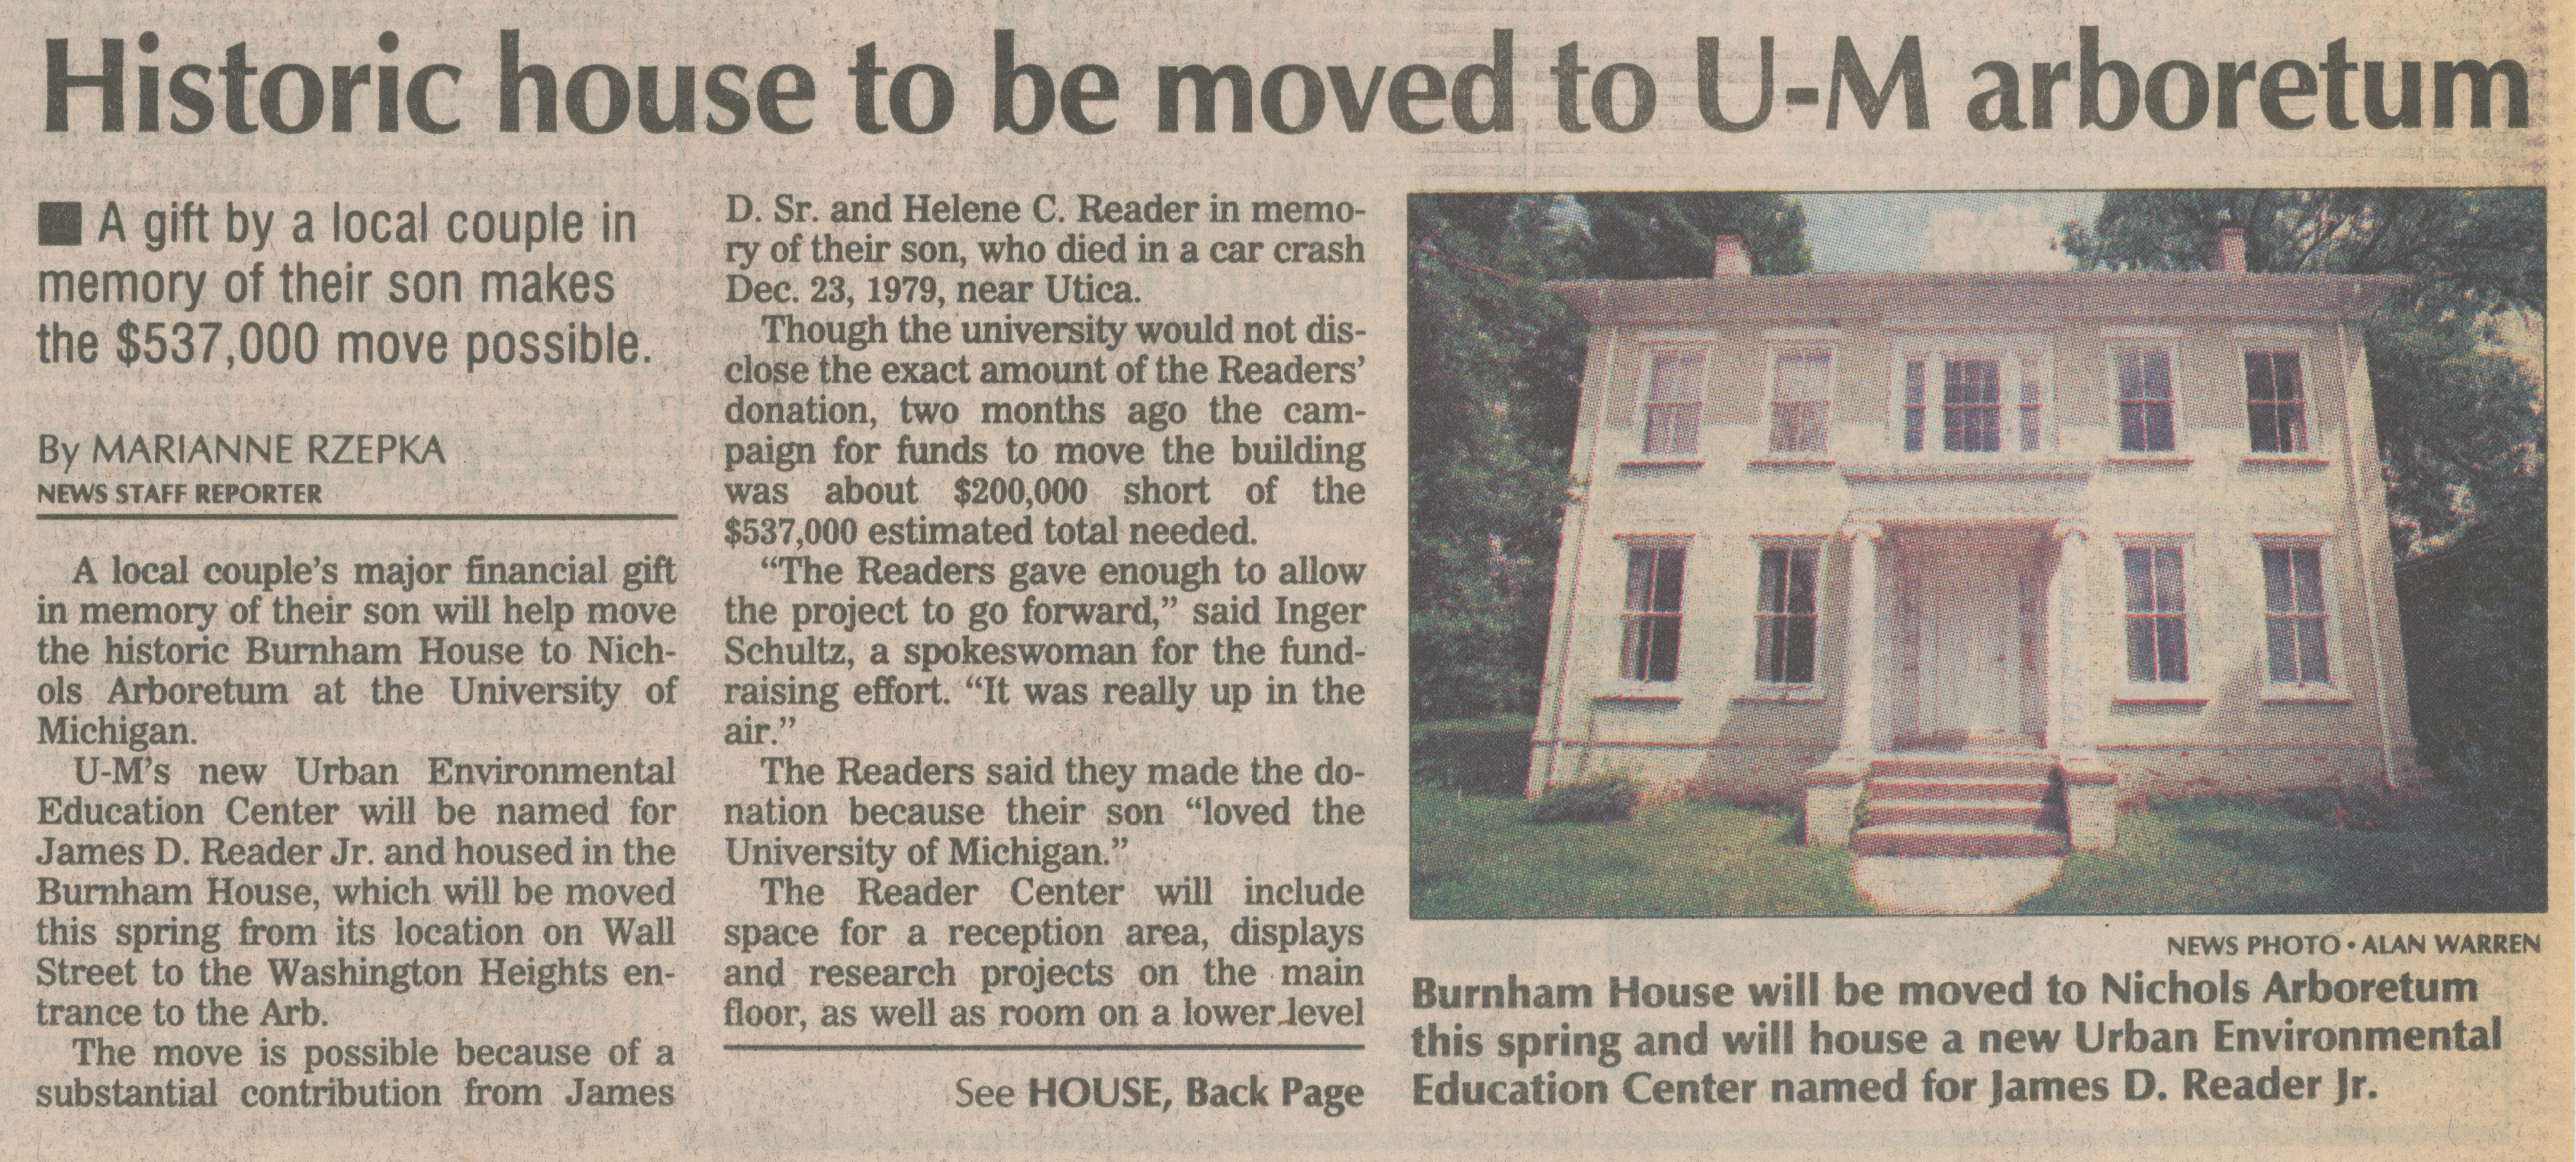 Historic house to be moved to U-M arboretum image